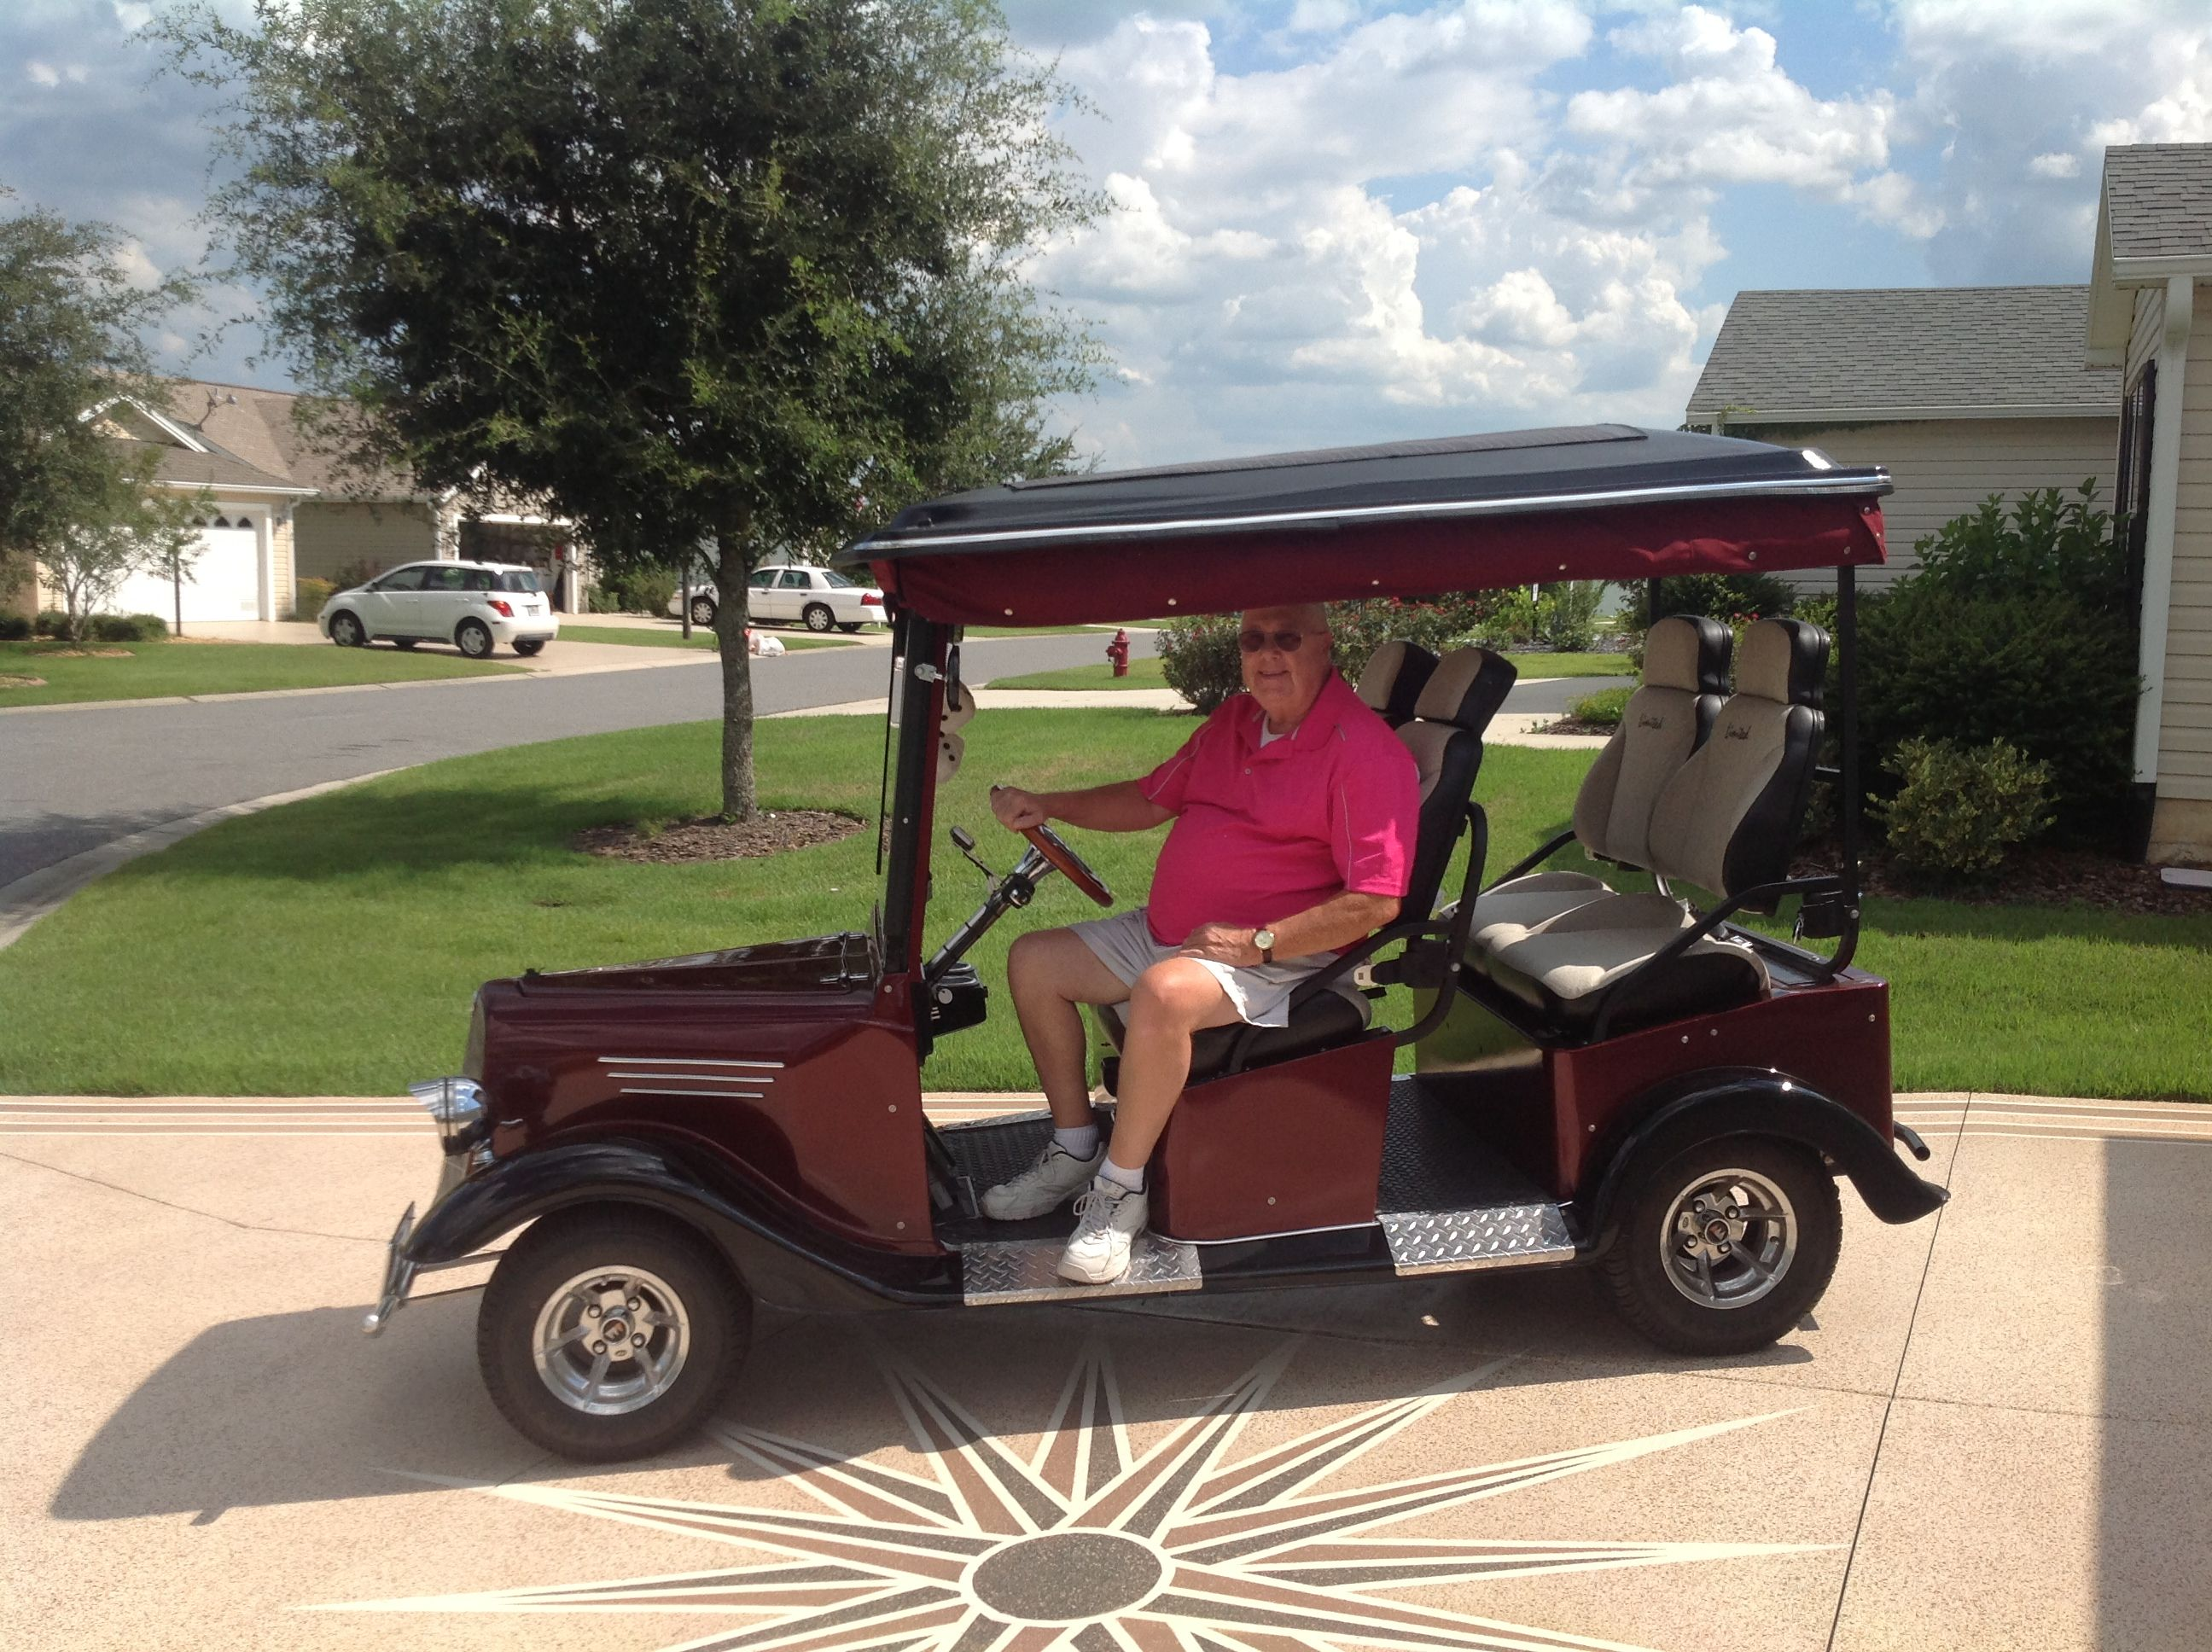 H Golf Cart Roof Html on